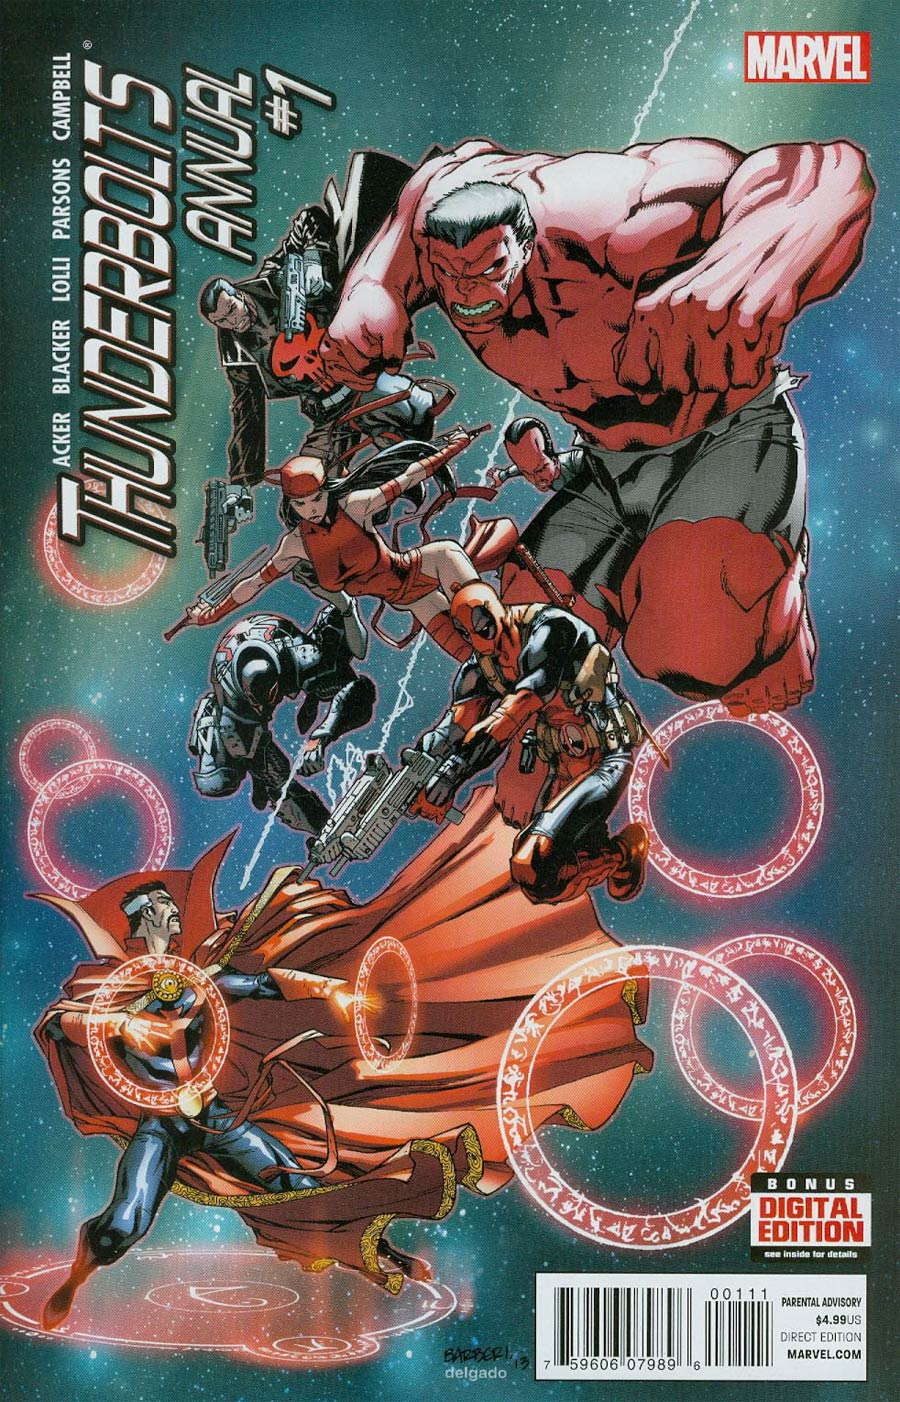 Thunderbolts Vol 2 Annual #1